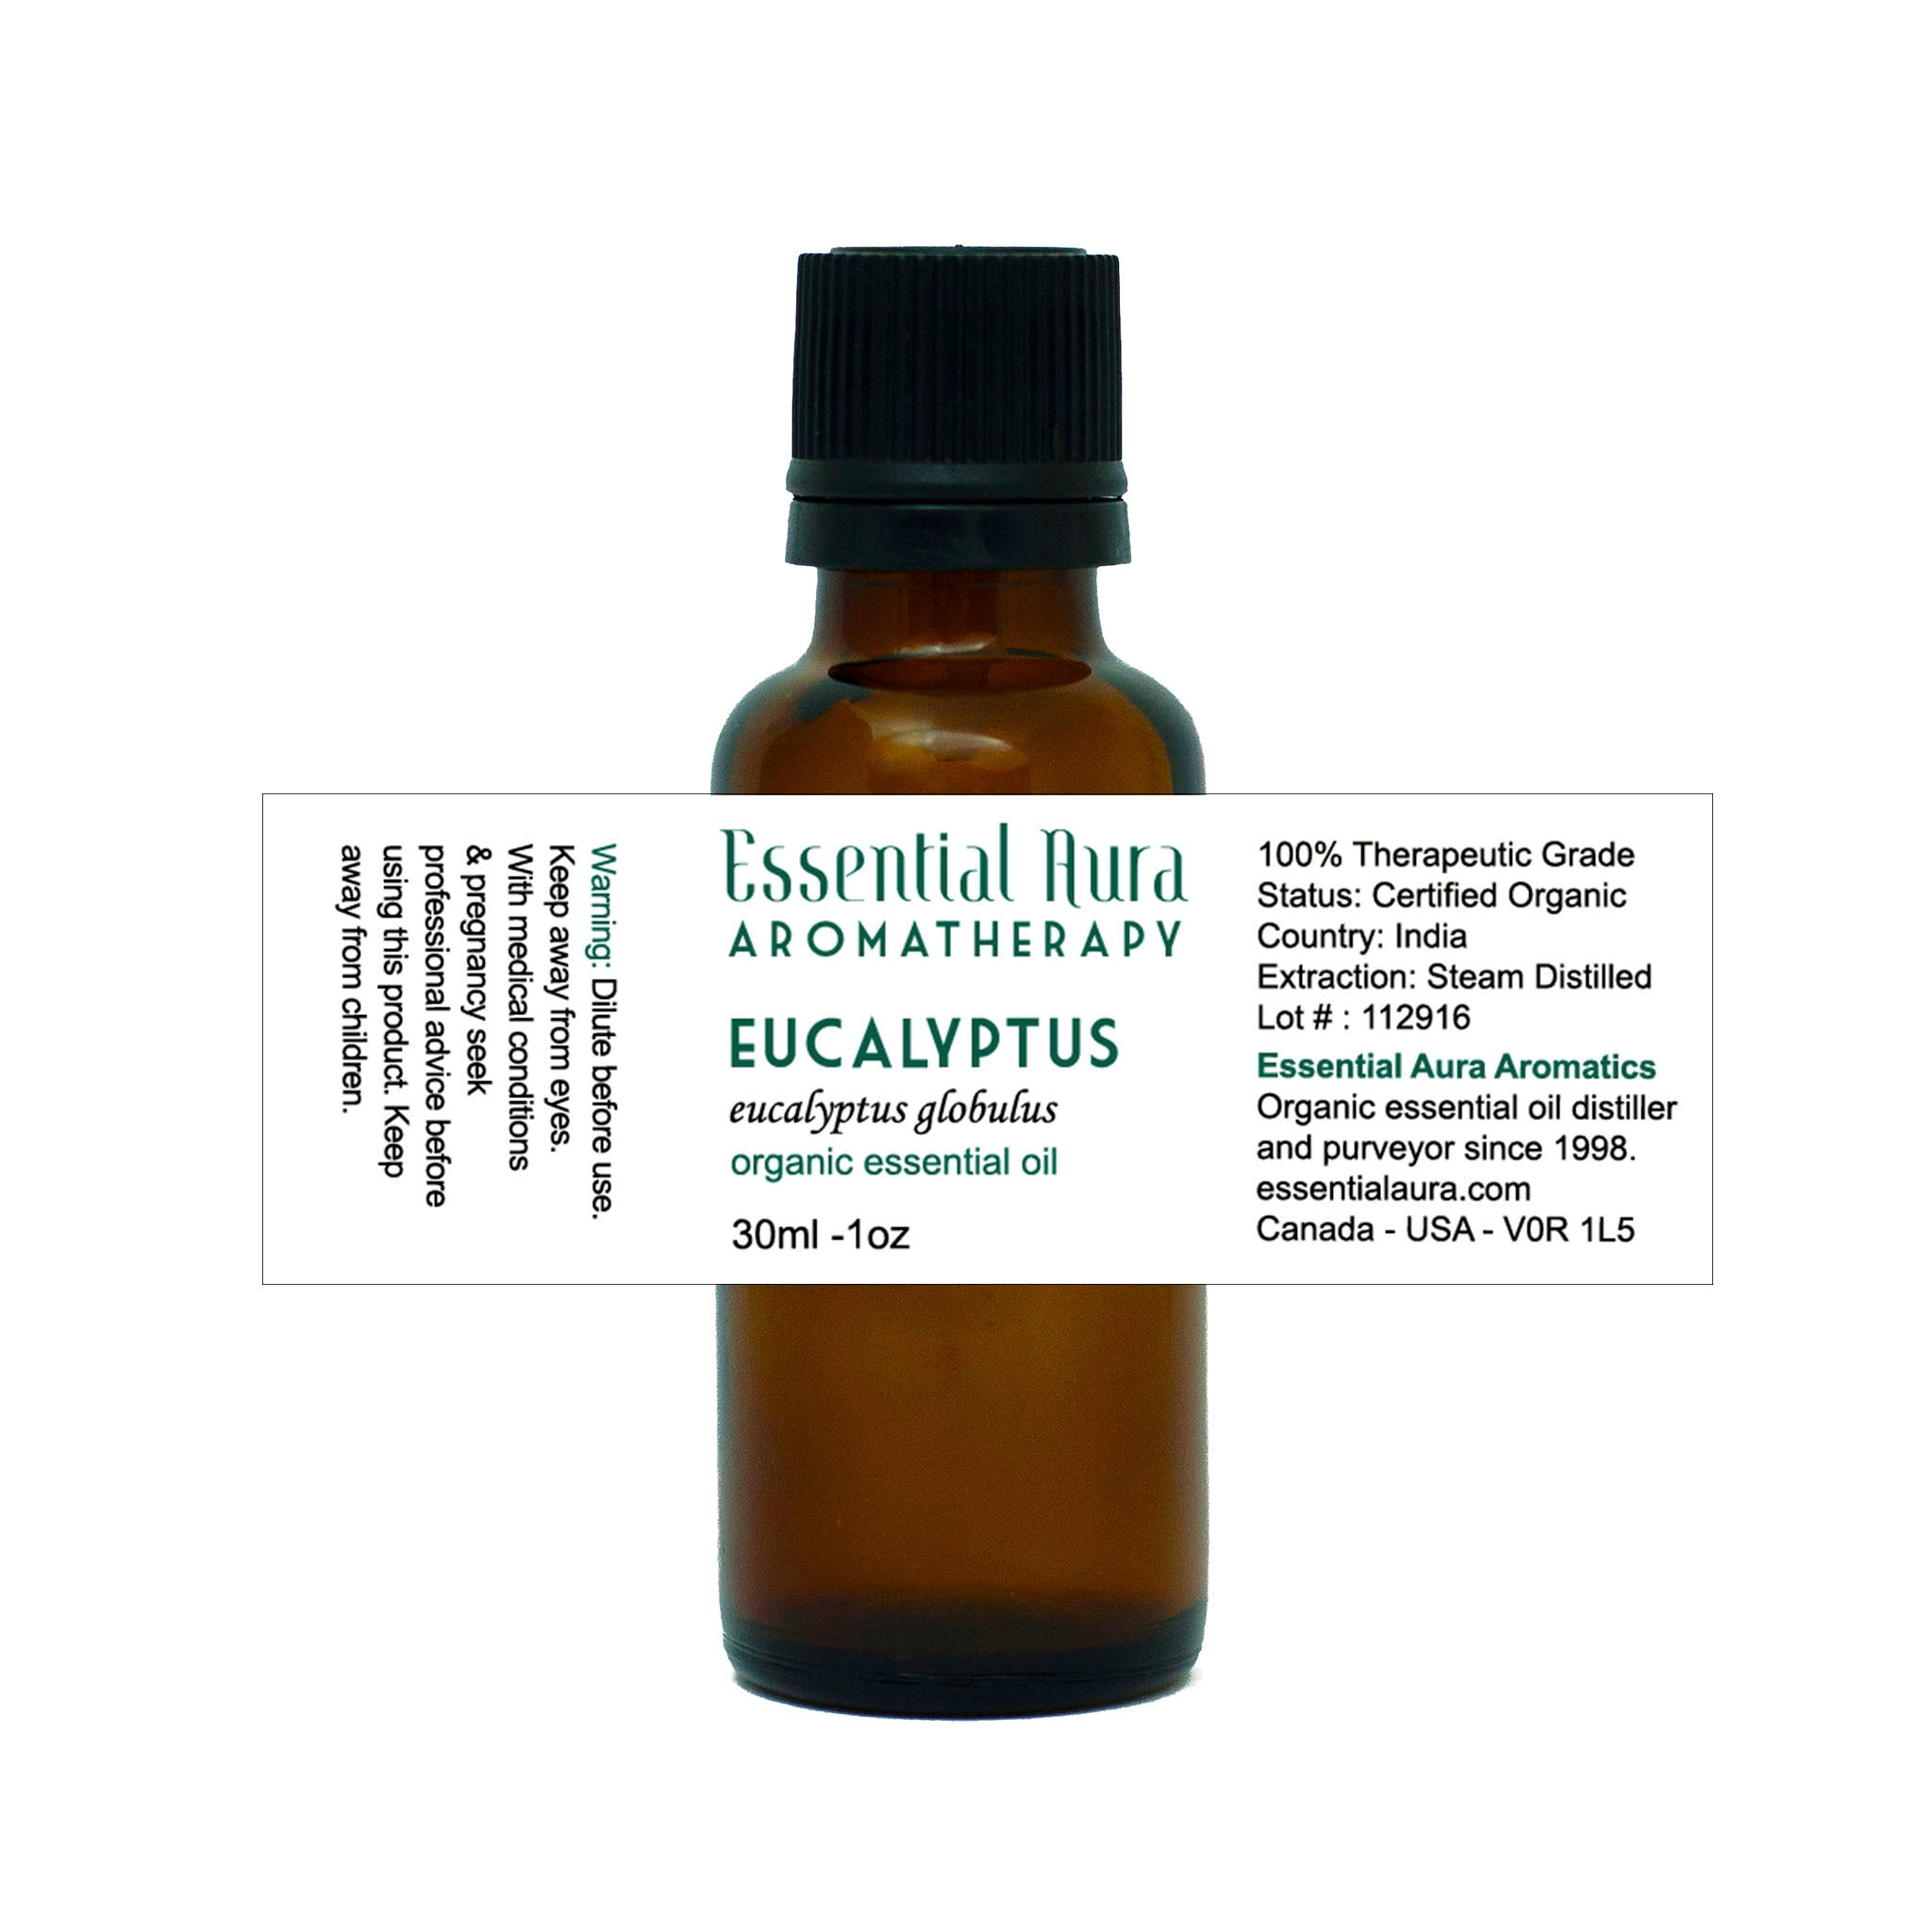 bottle of eucalyptus essential oil